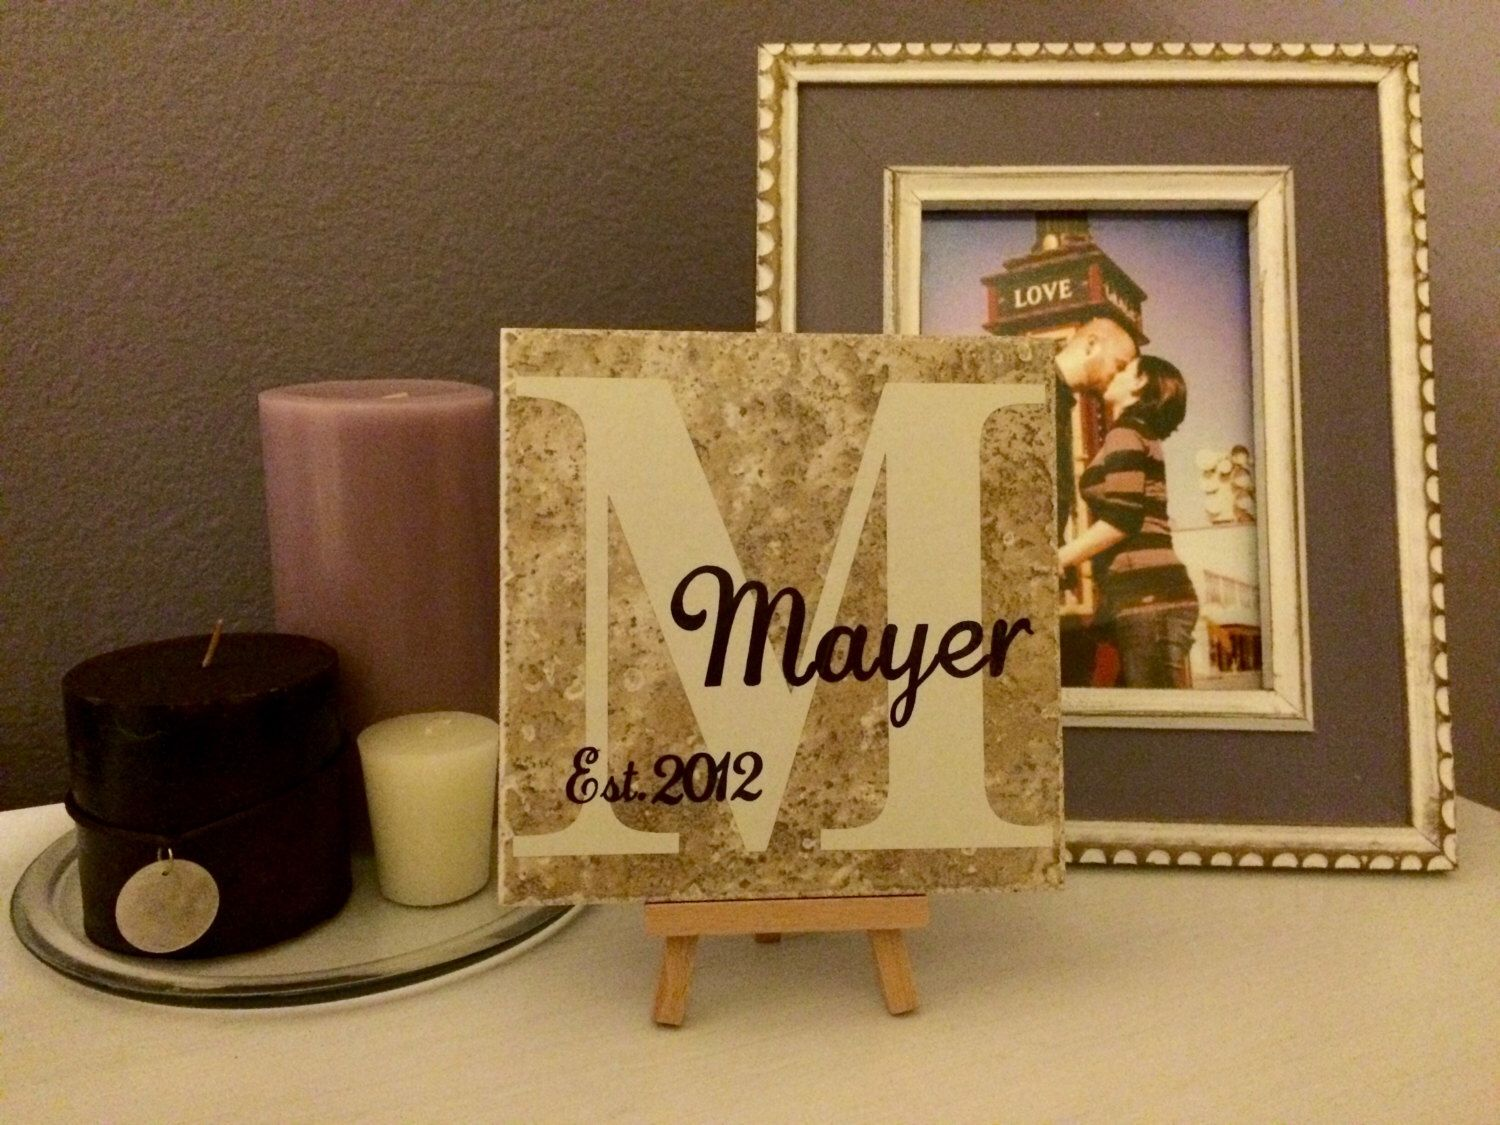 Personalized ceramic name tile by canvaselephant on etsy https personalized ceramic name tile by canvaselephant on etsy httpsetsy dailygadgetfo Choice Image